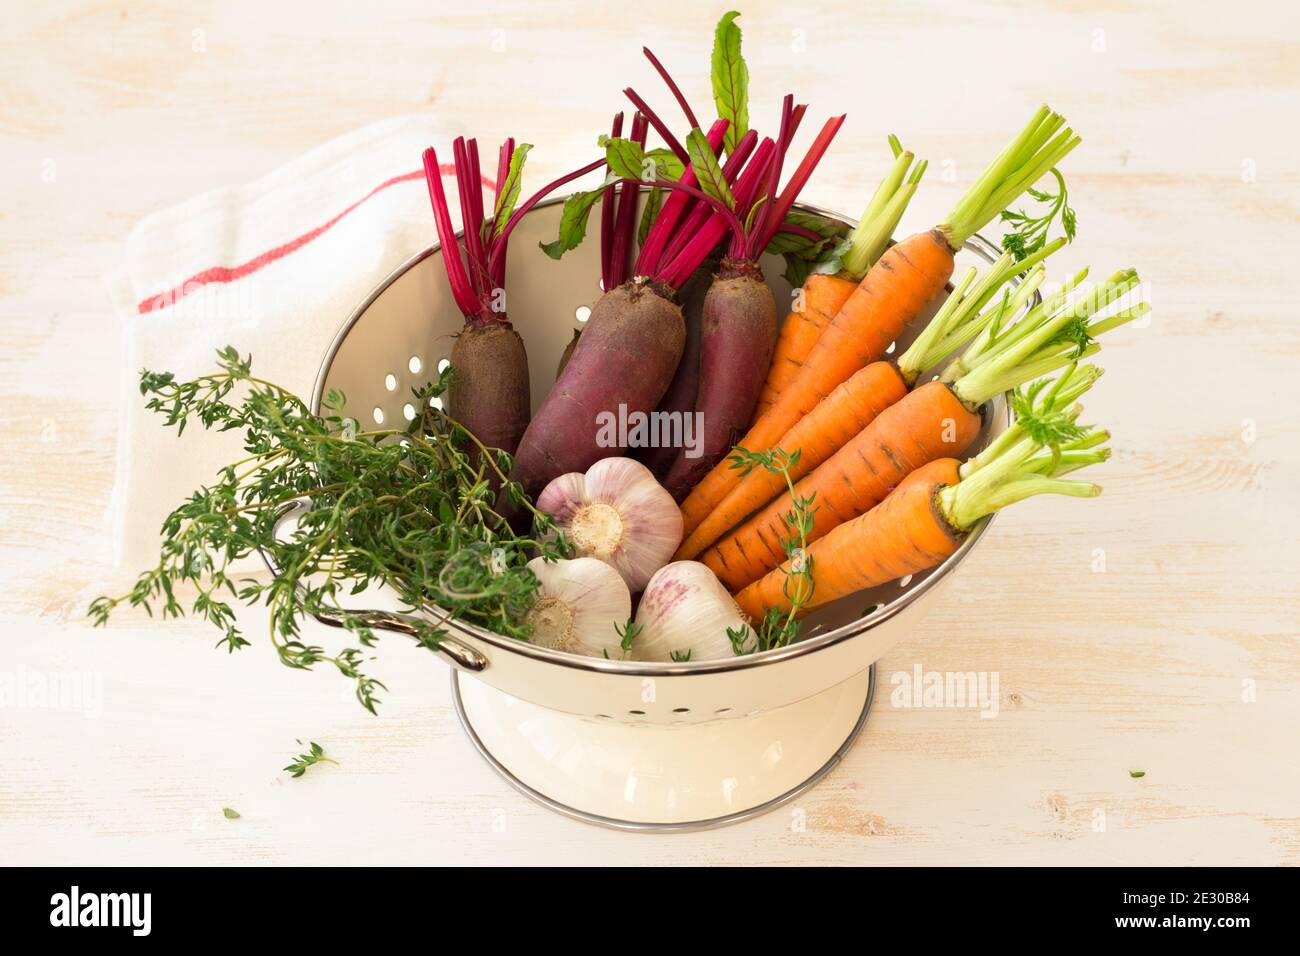 Fresh young organic vegetables, carrots, beets, garlic and greens for salad in colander on white background, selective focus. Healthy vegan food Stock Photo